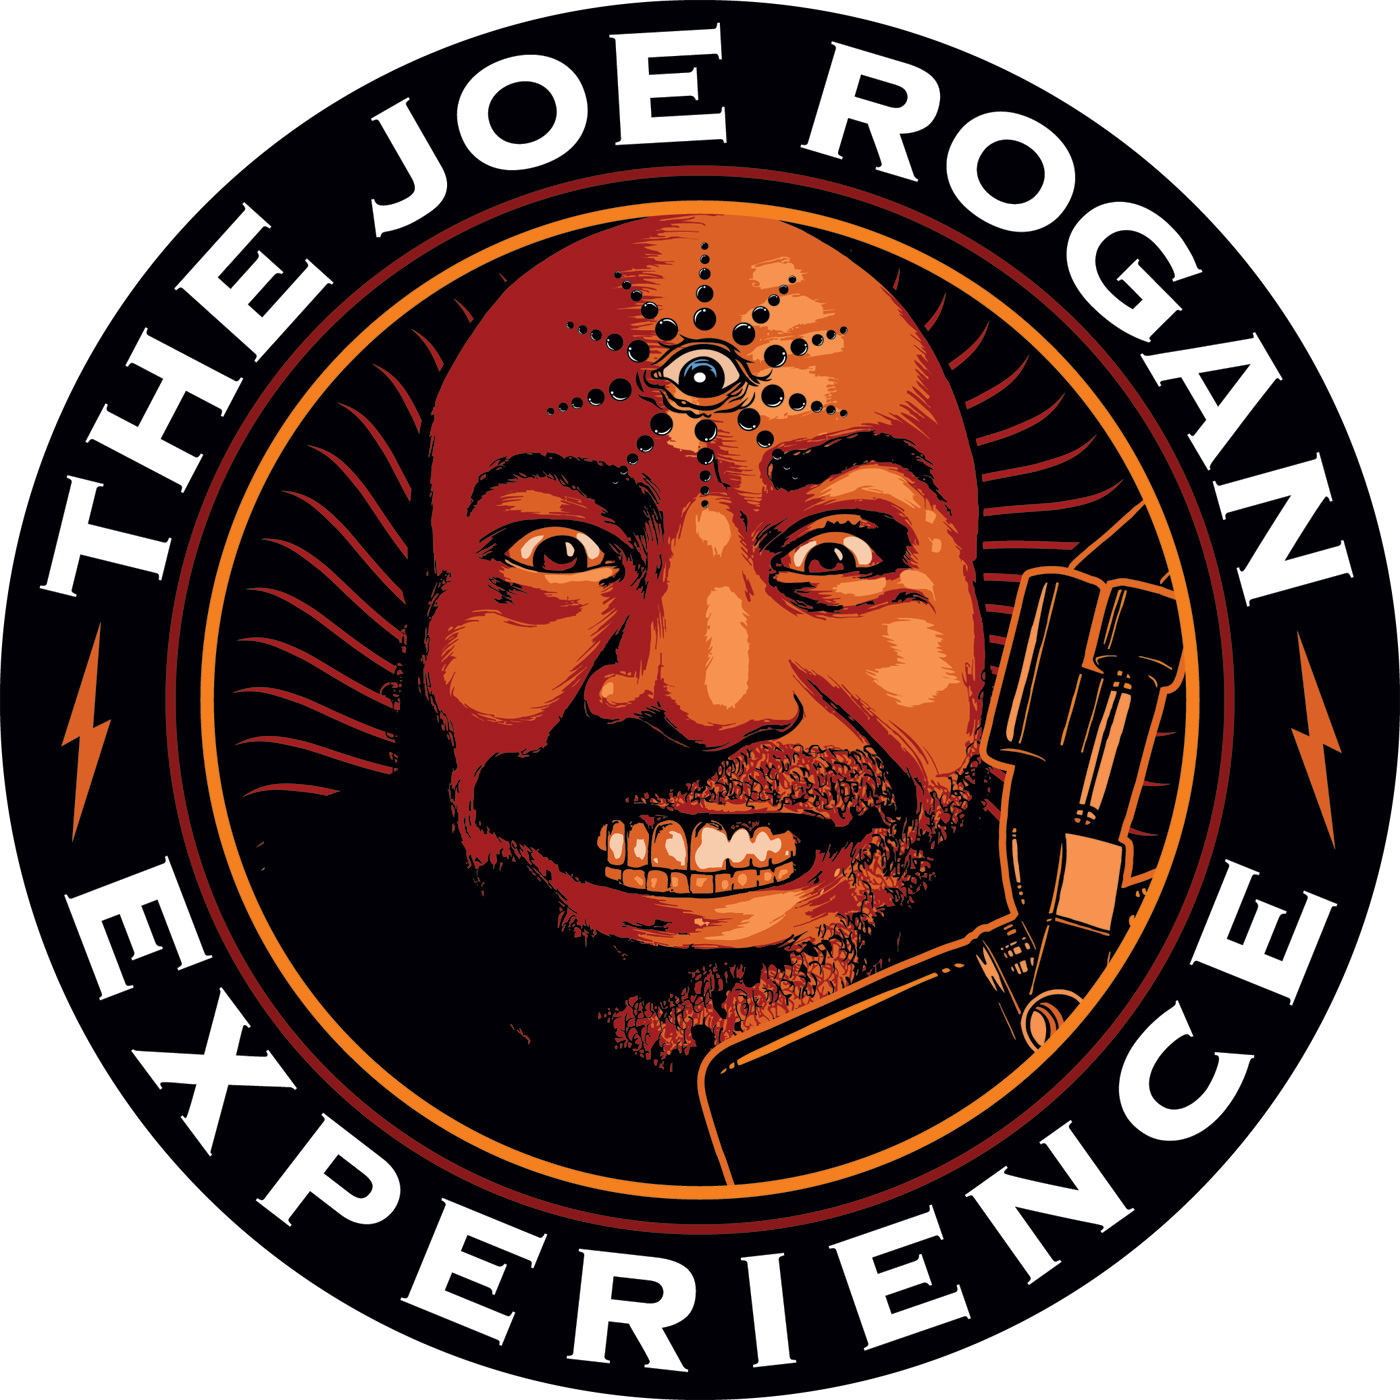 The Joe Rogan Experience PODCAST #113 - Brian Posehn, Brian Redban